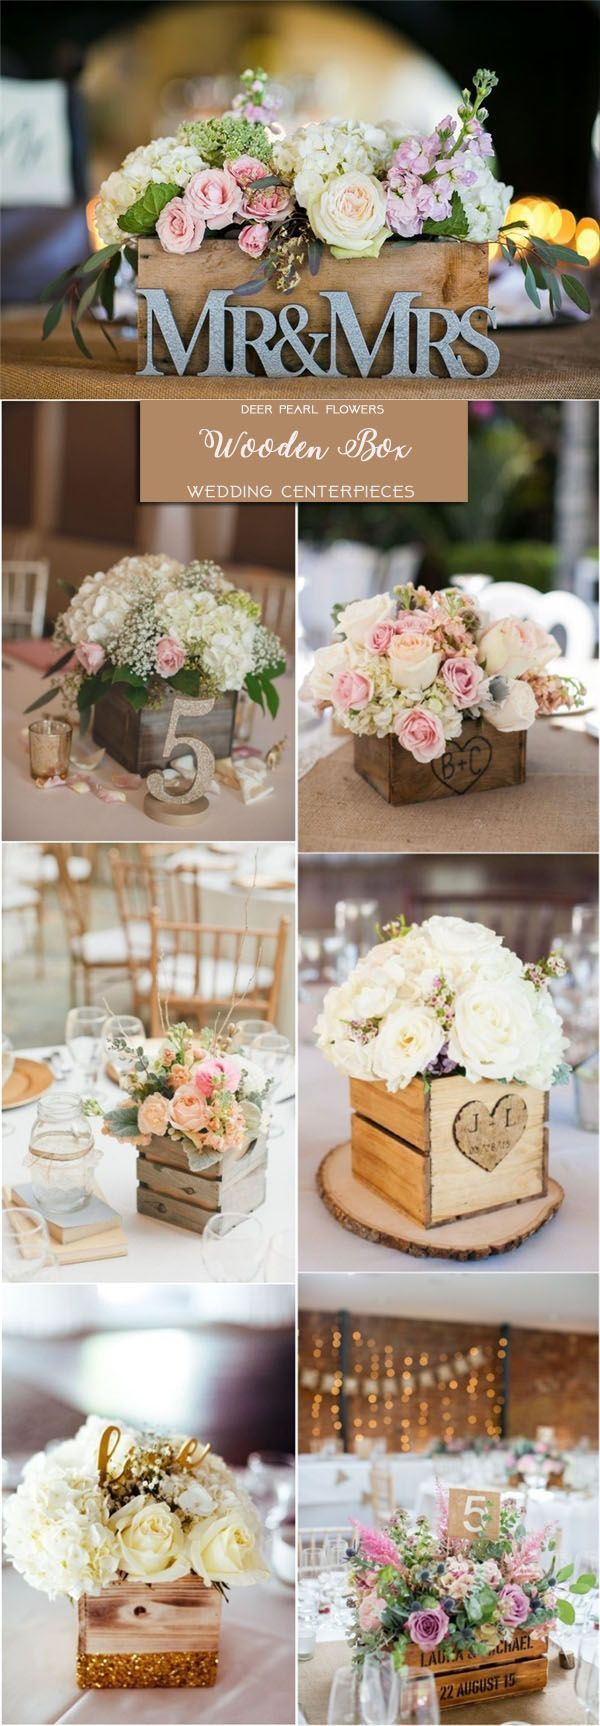 Rustic country wooden box wedding centerpieces httpwww rustic country wooden box wedding centerpieces httpdeerpearlflowers junglespirit Images